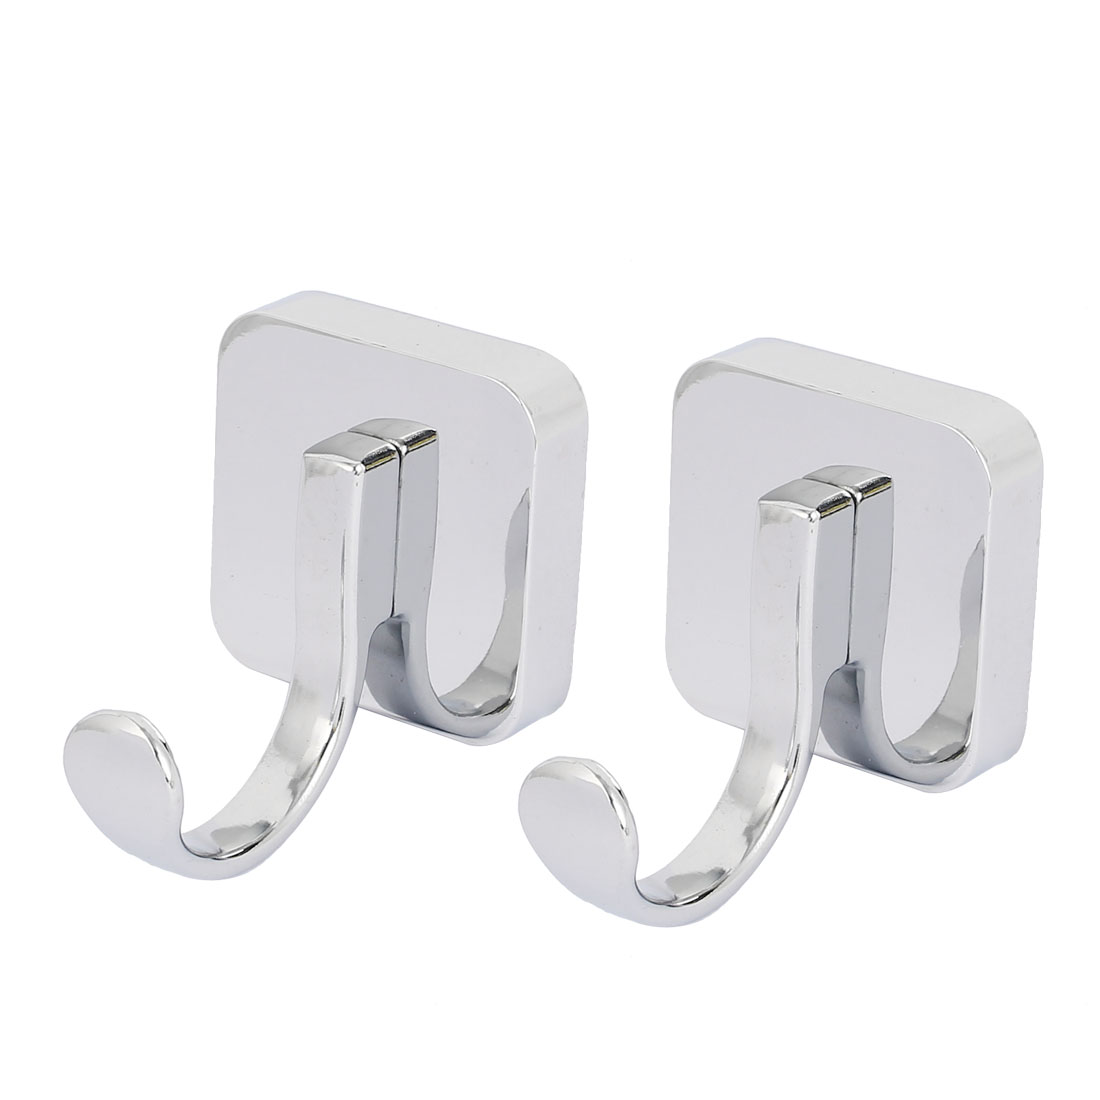 Bedroom Robe Hanging Wall Mounted Zinc Alloy Chrome Plated Single Hanger Hook Silver Tone 2pcs